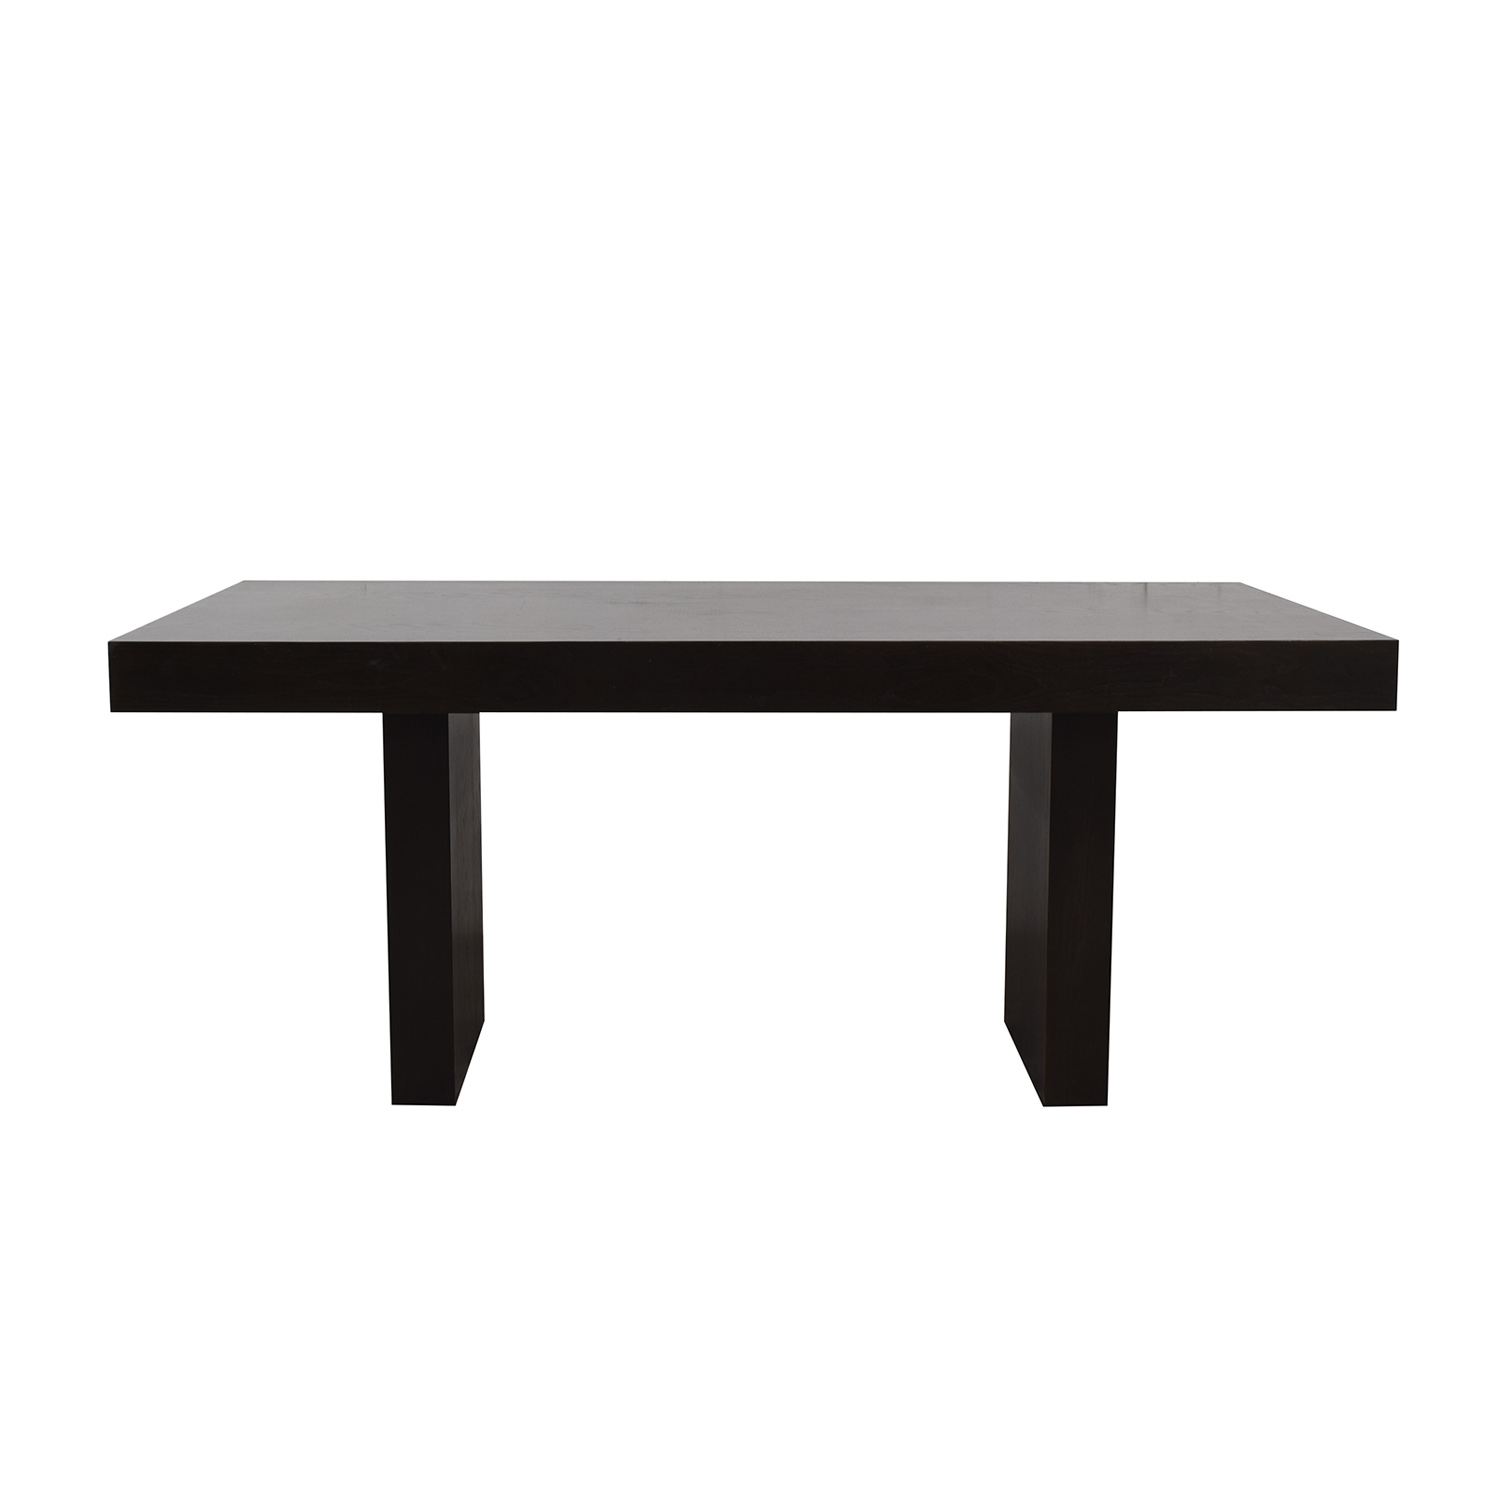 West Elm West Elm Hayden Black Dining Table discount